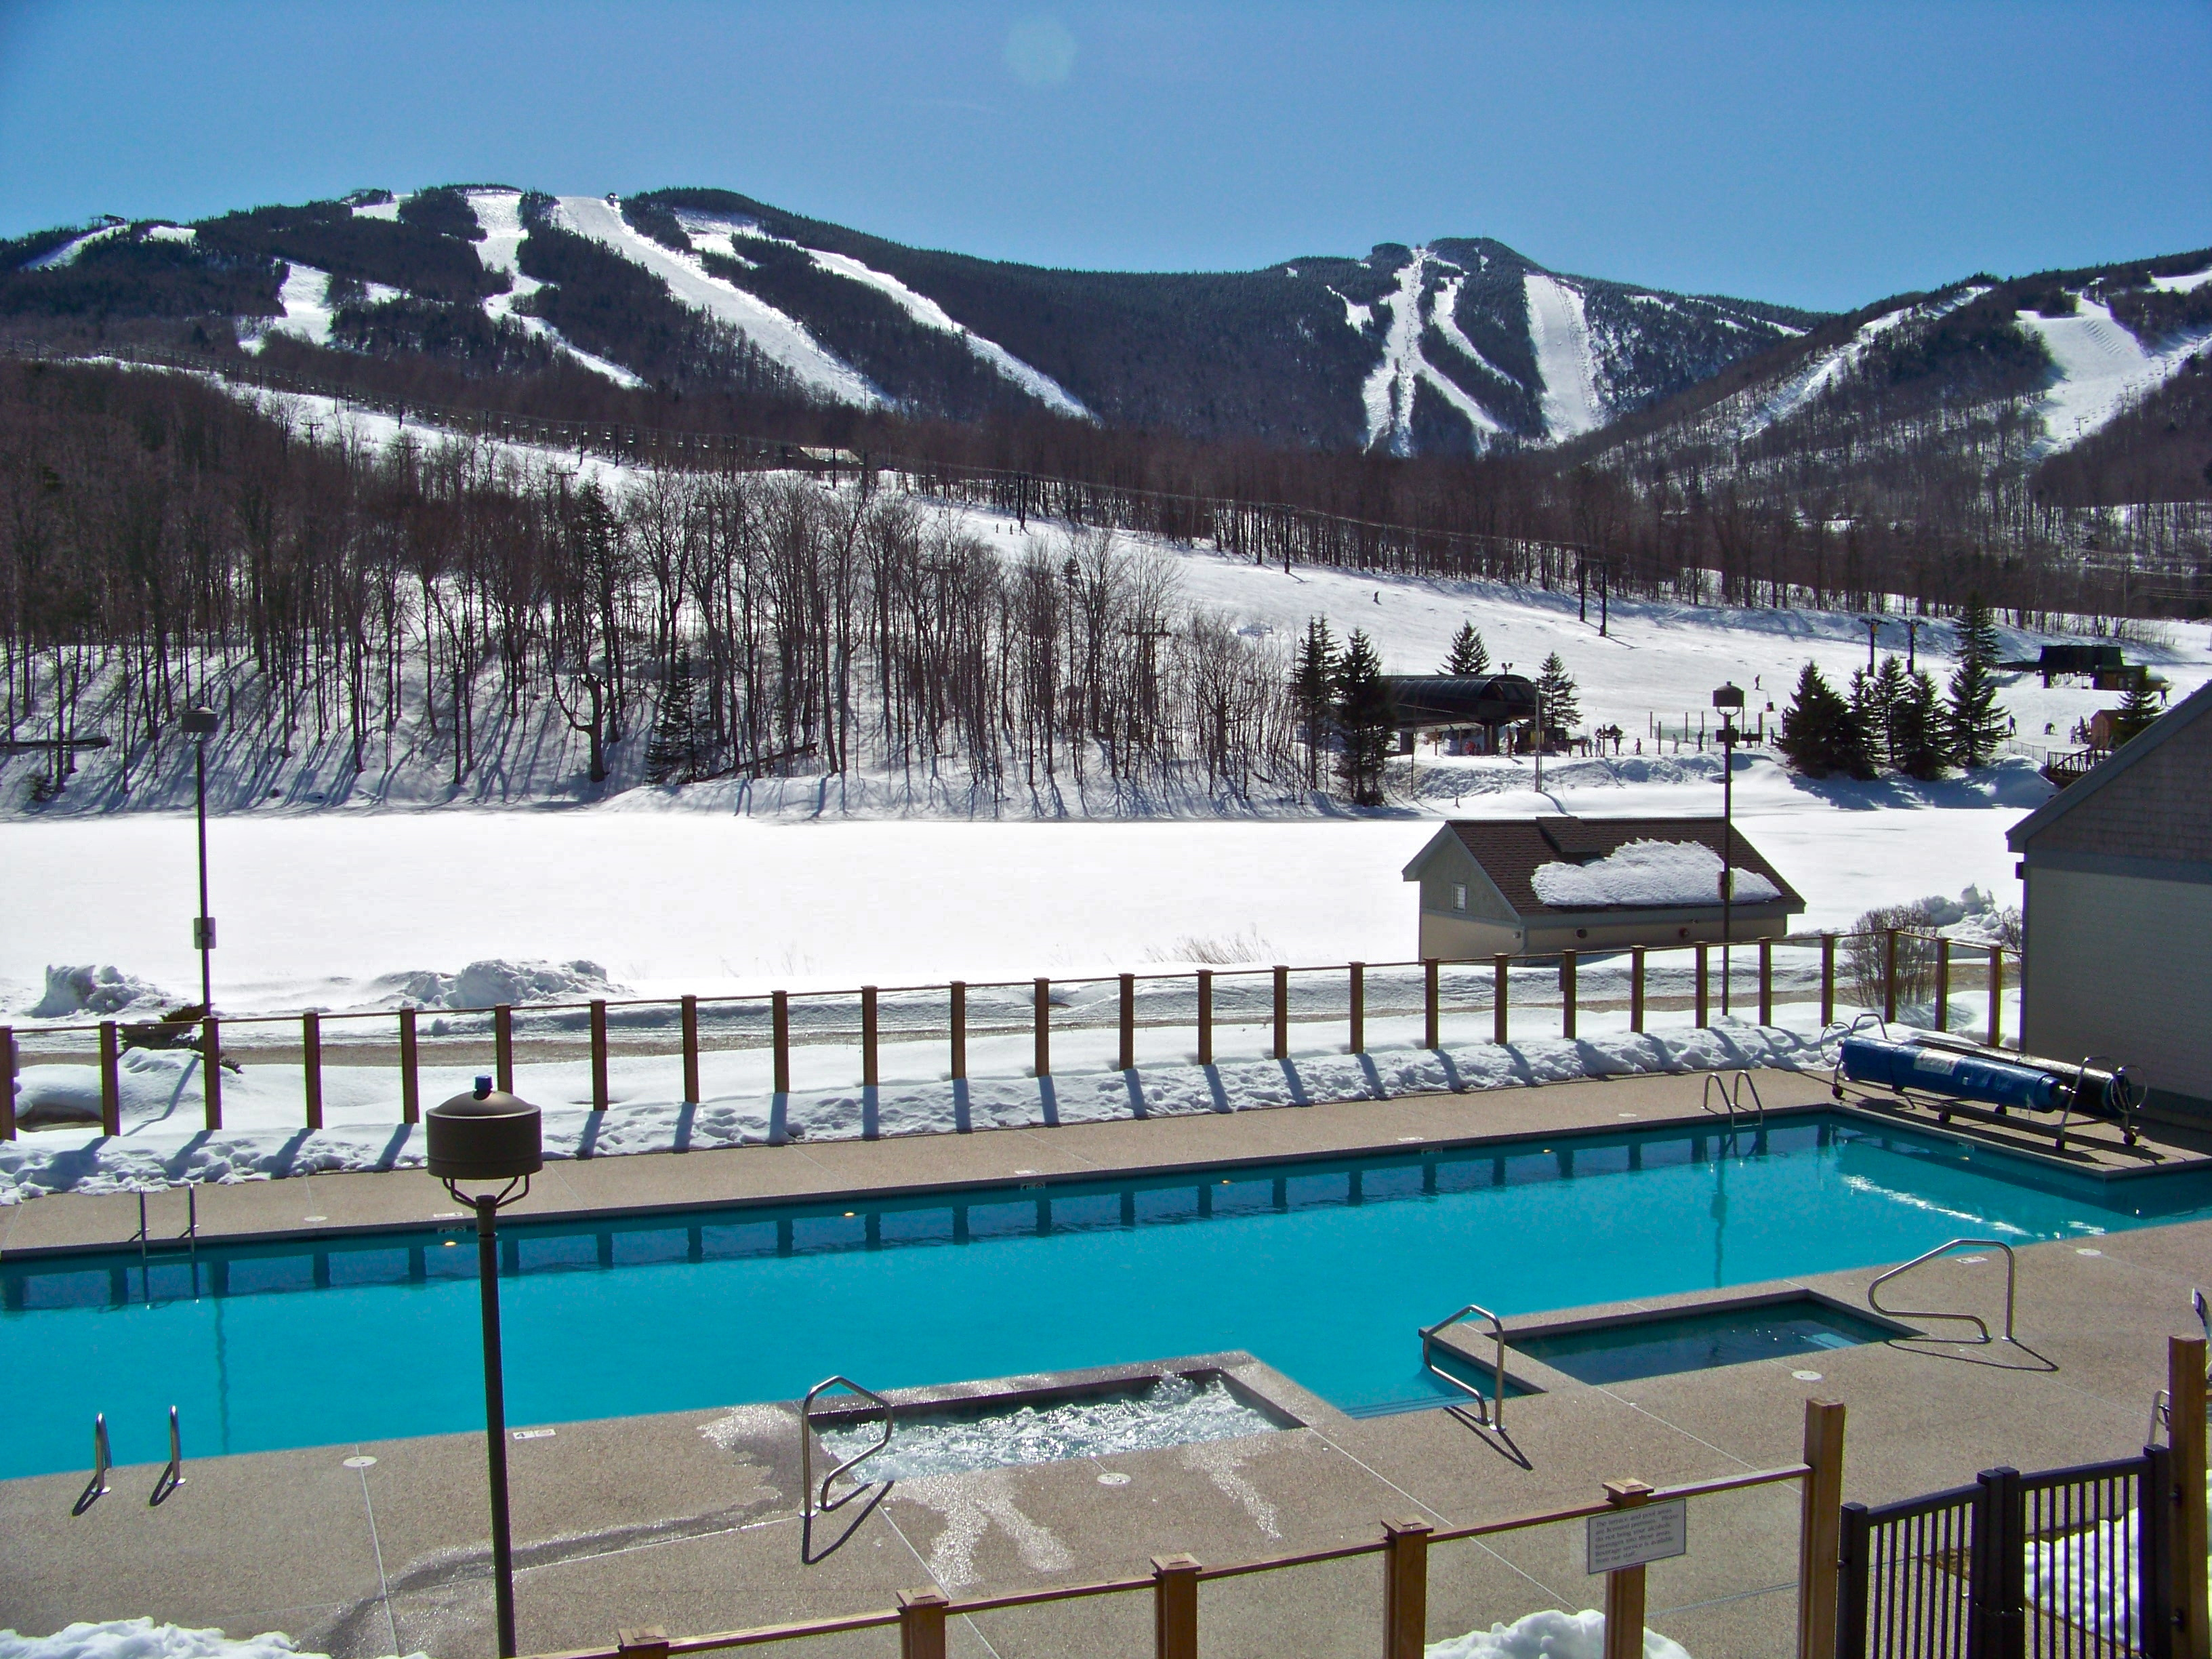 Go for a swim after skiing.